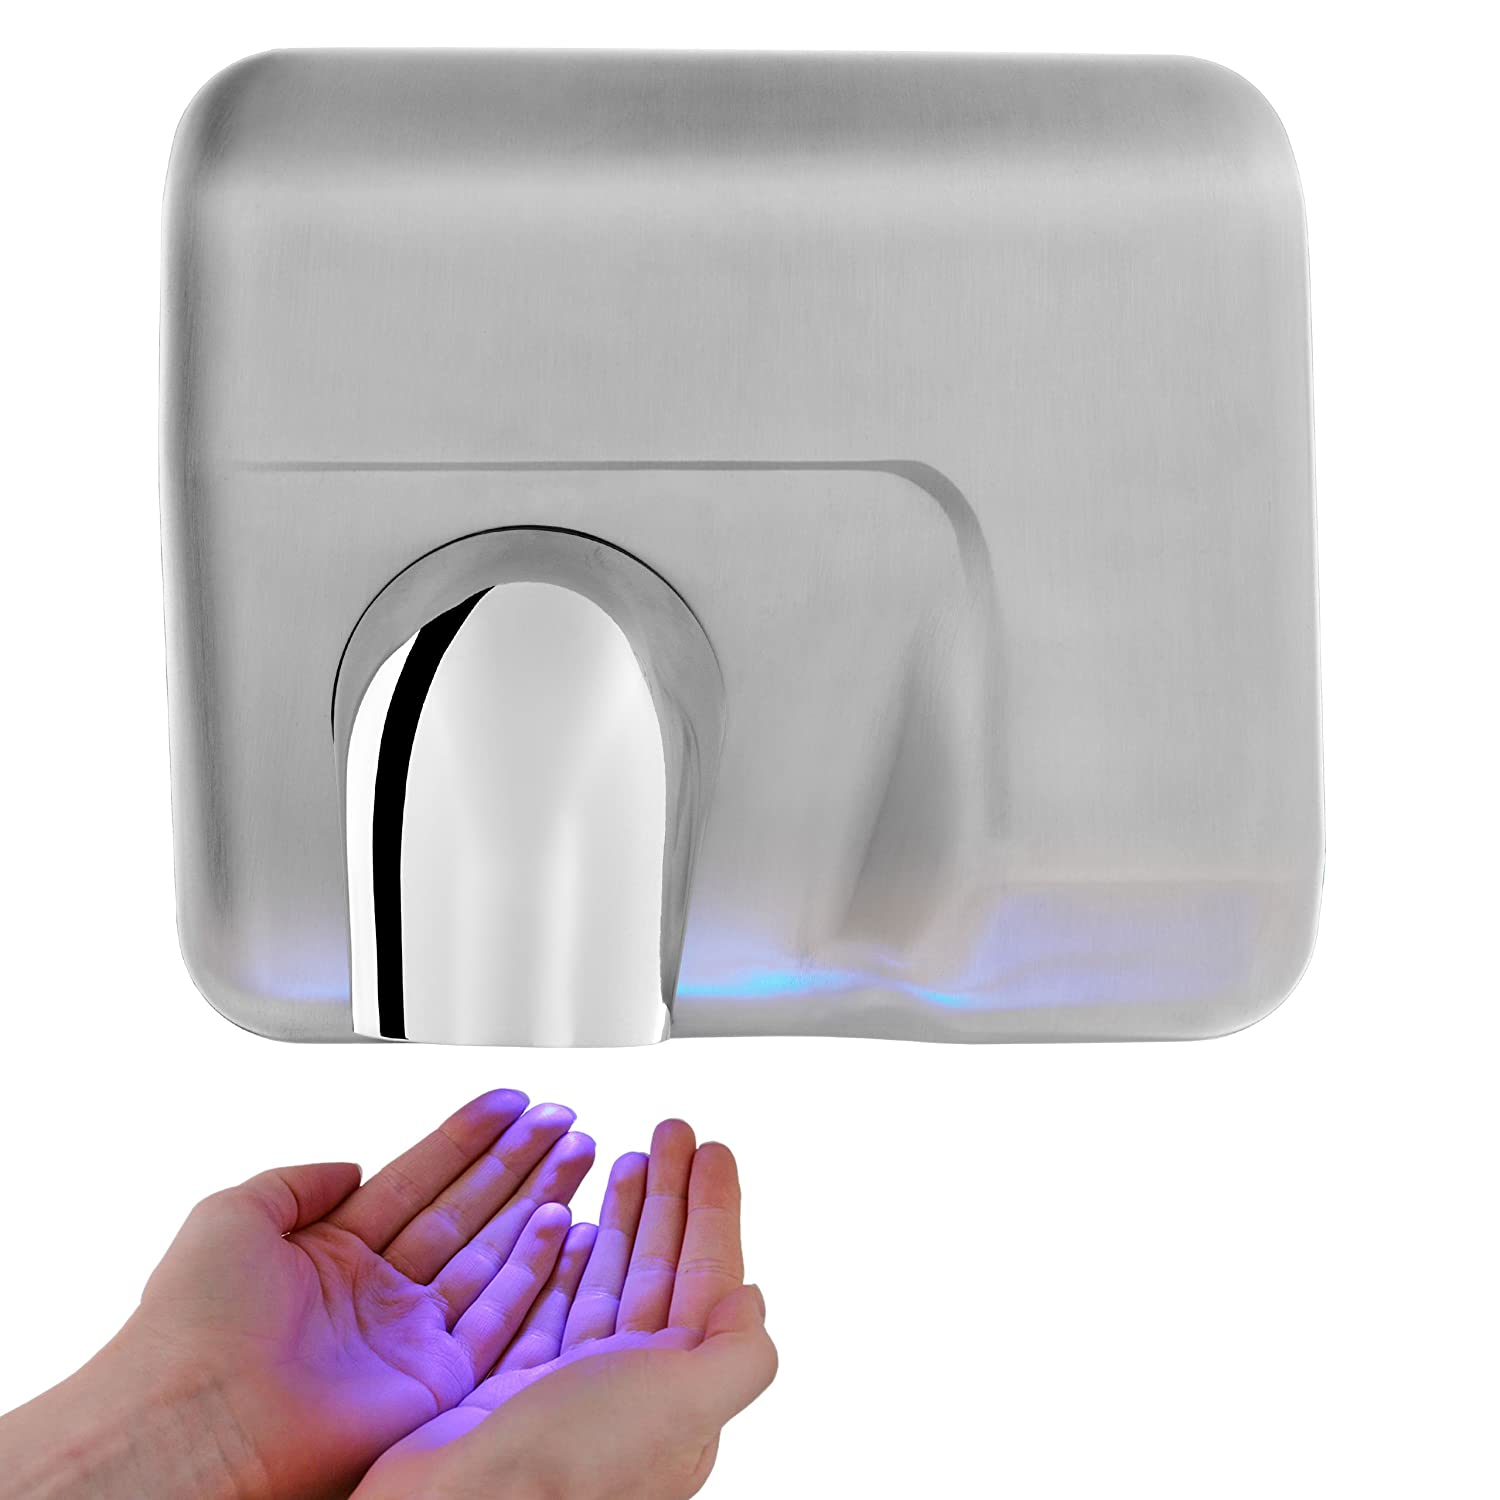 Nozzle Hand Dryer - Electric Automatic Rotating Drier - Brushed Stainless Steel Washroom Hub